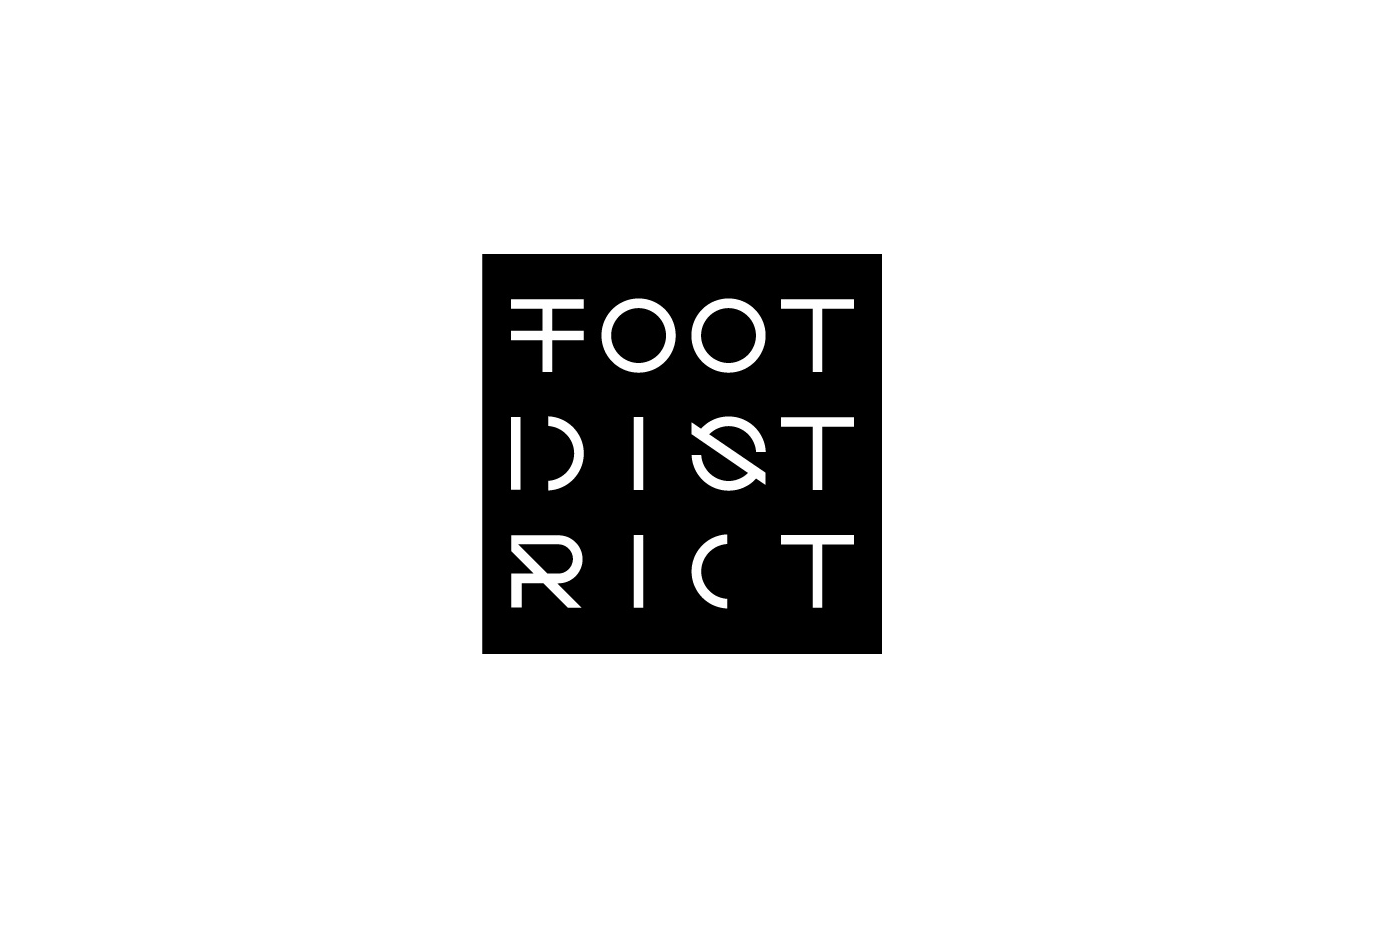 foot district logo